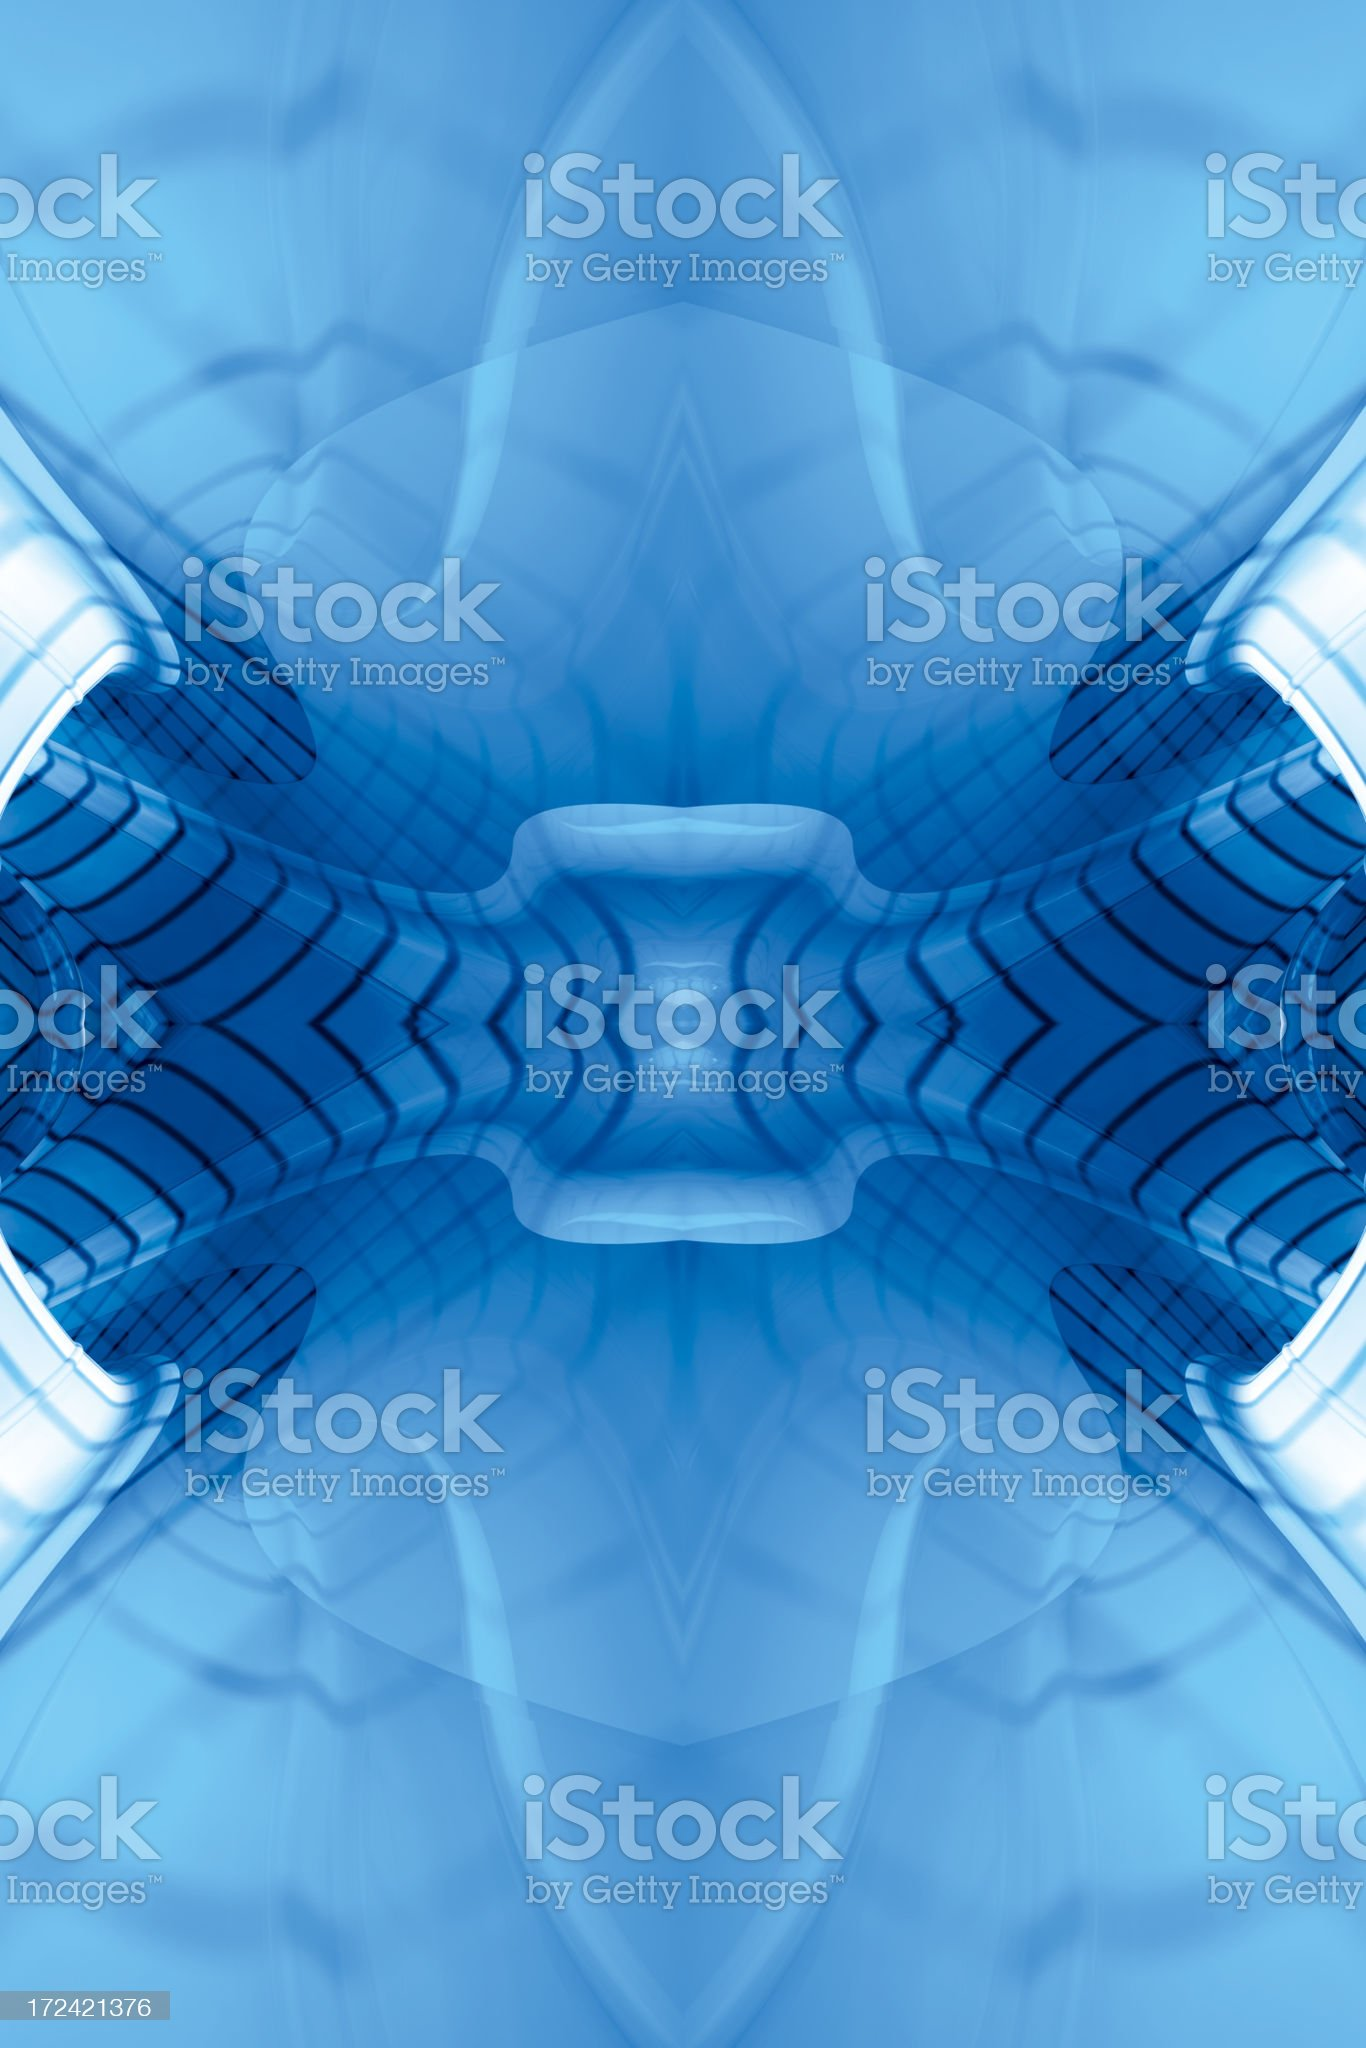 BlueReflectFractalFour royalty-free stock photo